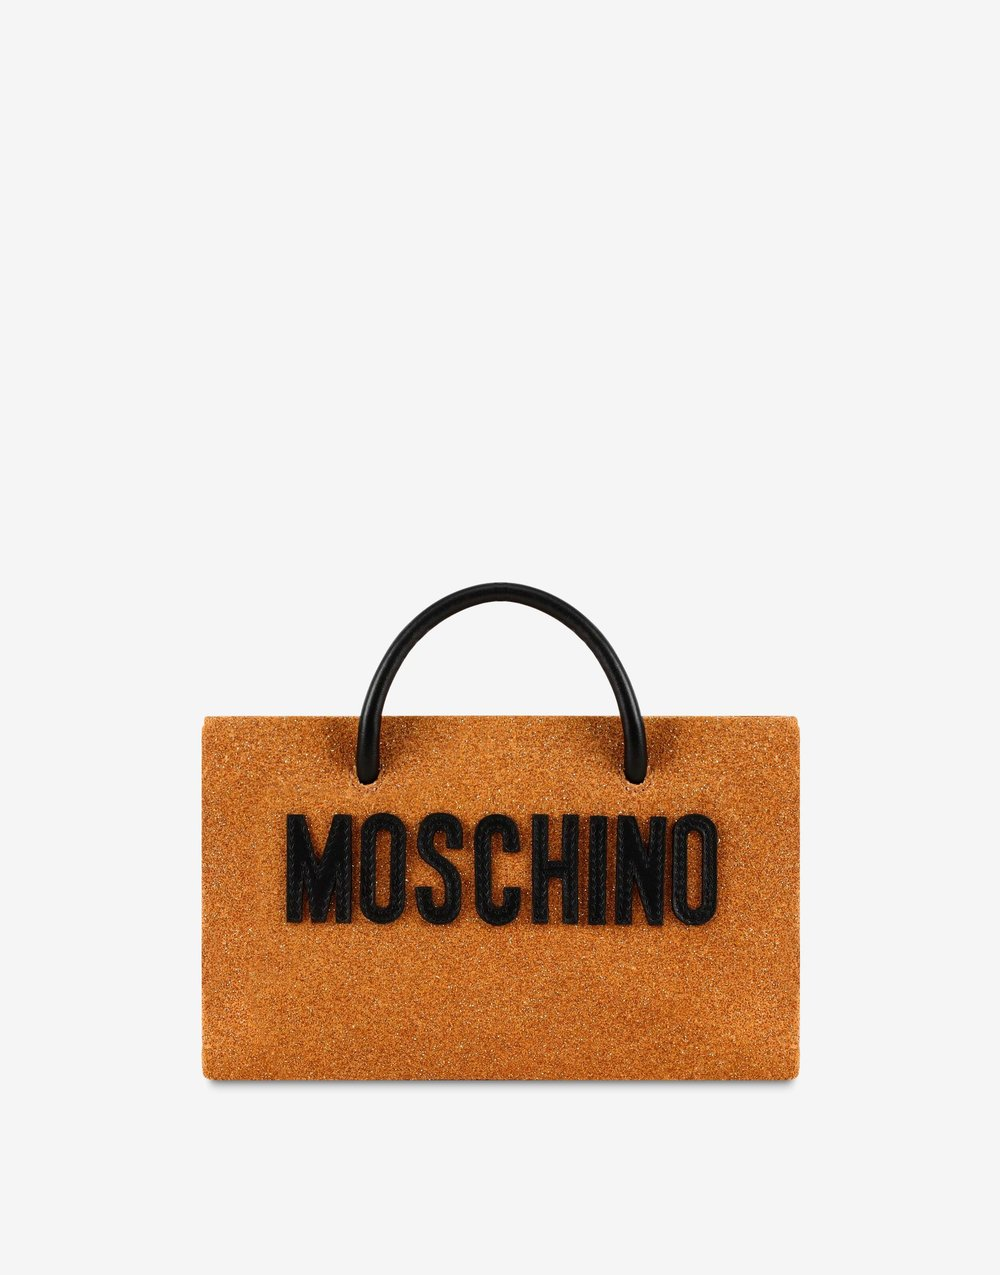 Photo: Courtesy Moschino